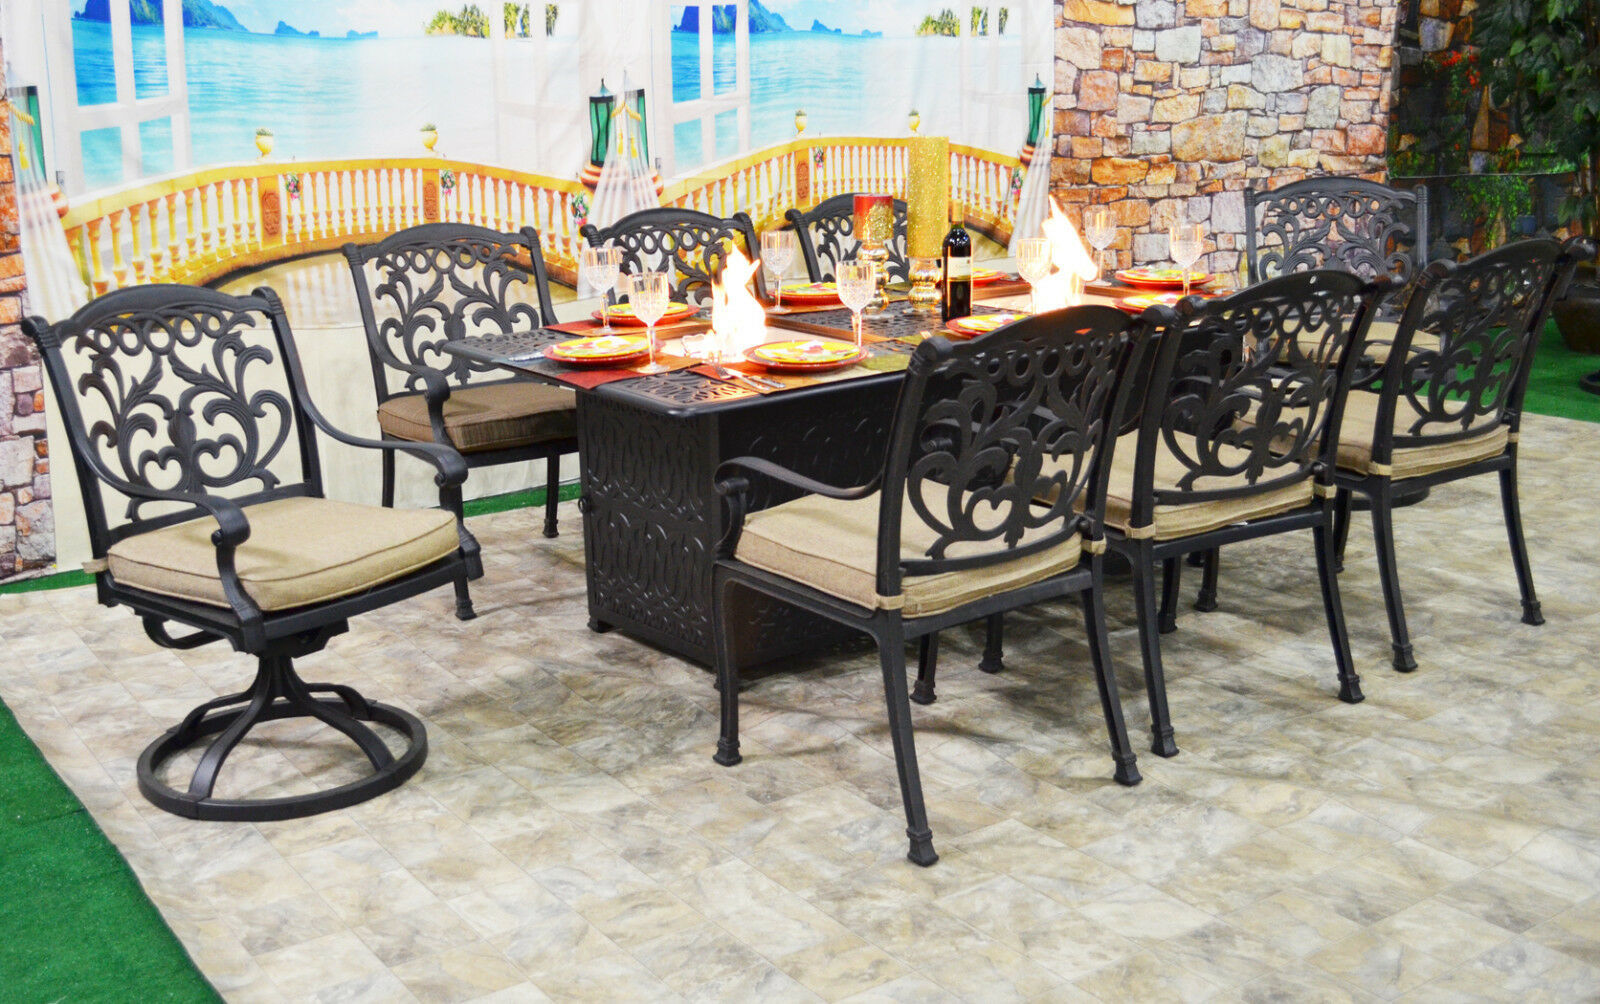 Patio dining table with built in fire pit 9 piece set ... on Outdoor Dining Tables With Fire Pit id=12654